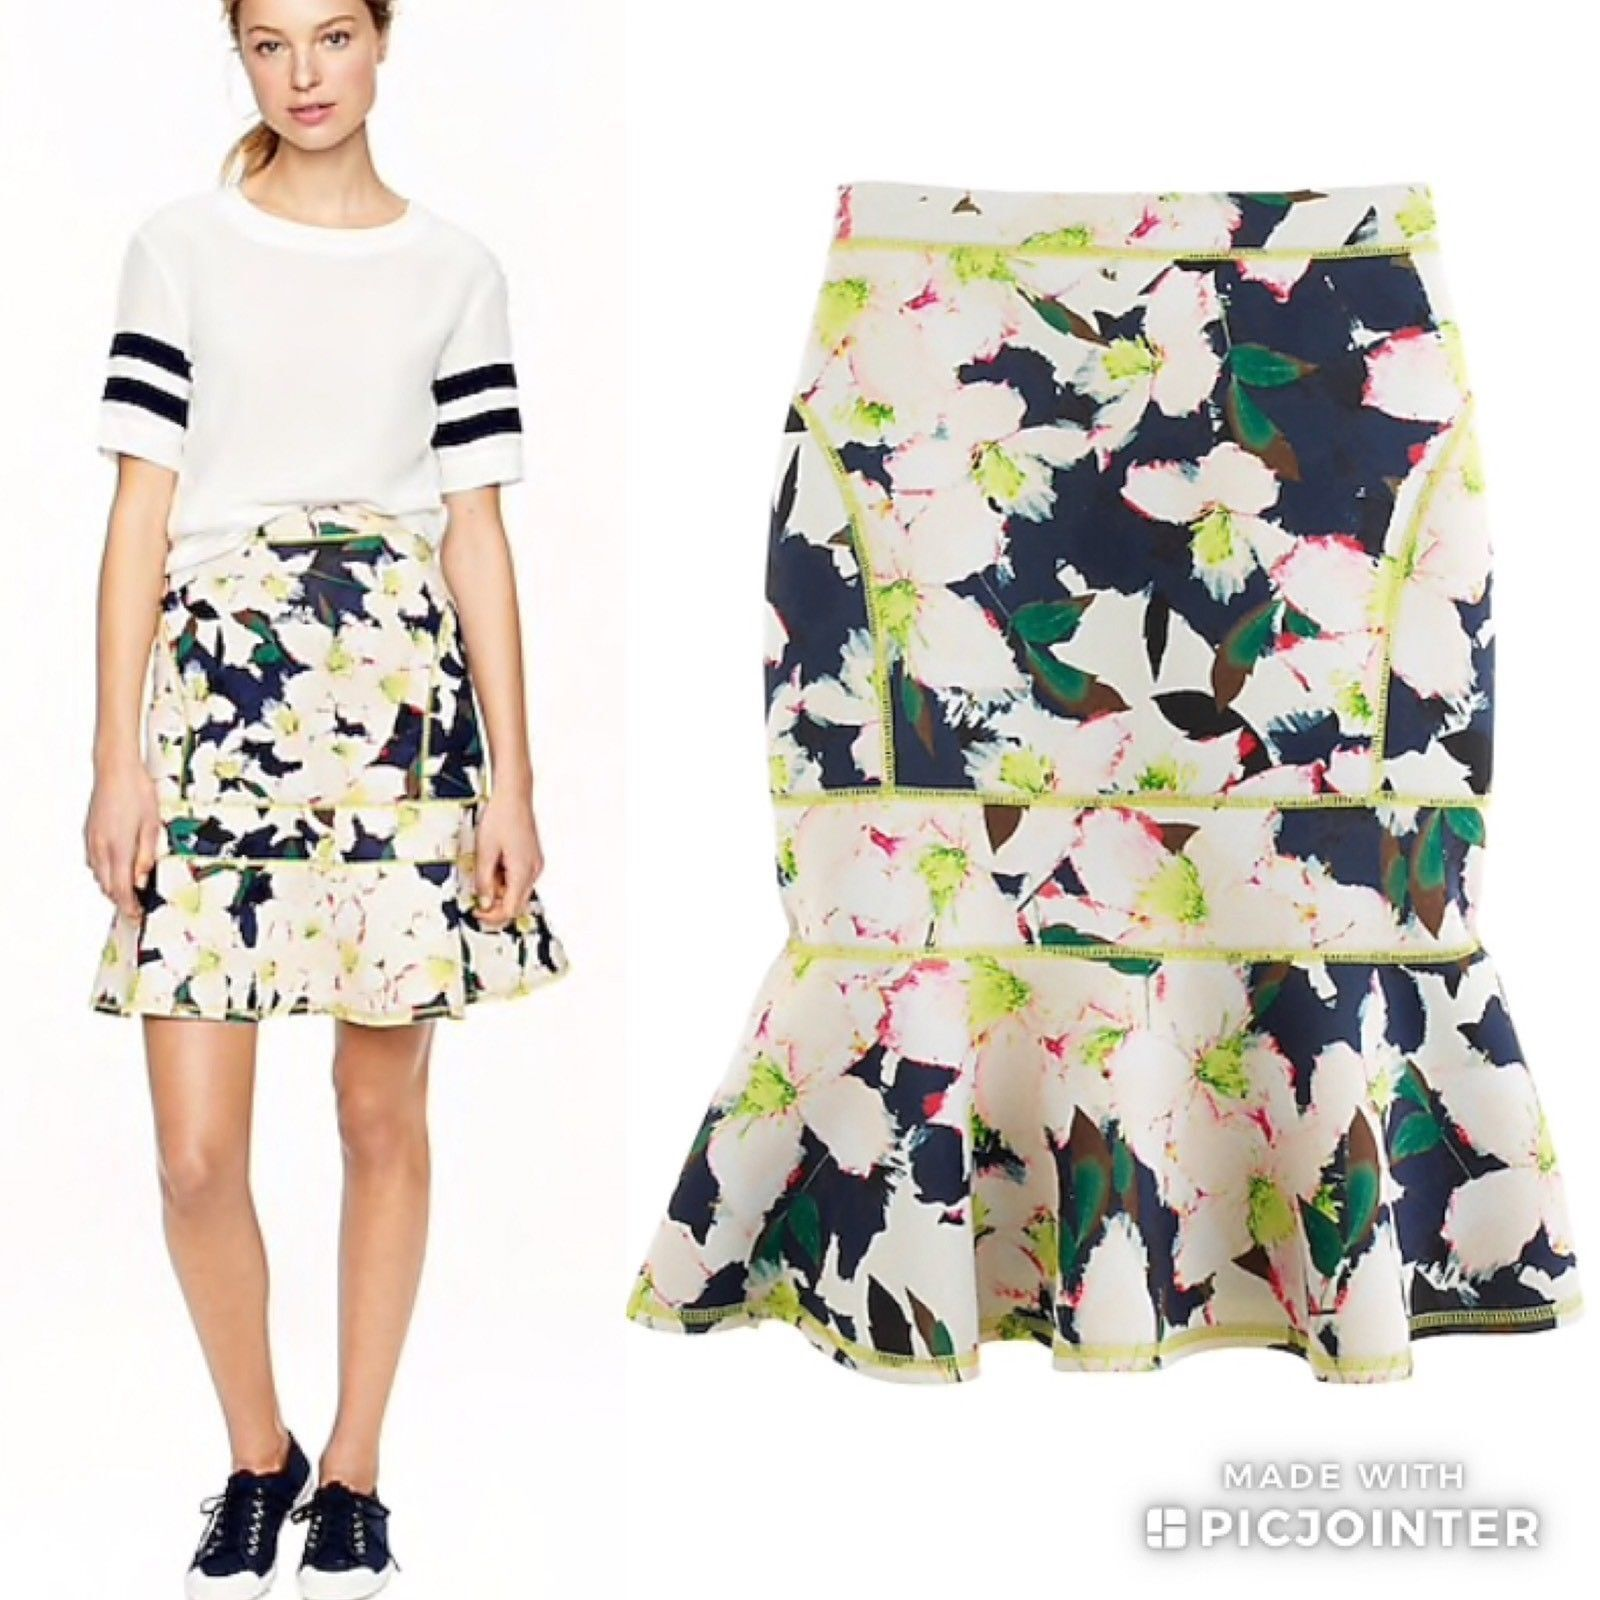 J.Crew Polyester Green Print Floral Fit and Flare Neoprene Scuba Skirt Size 12